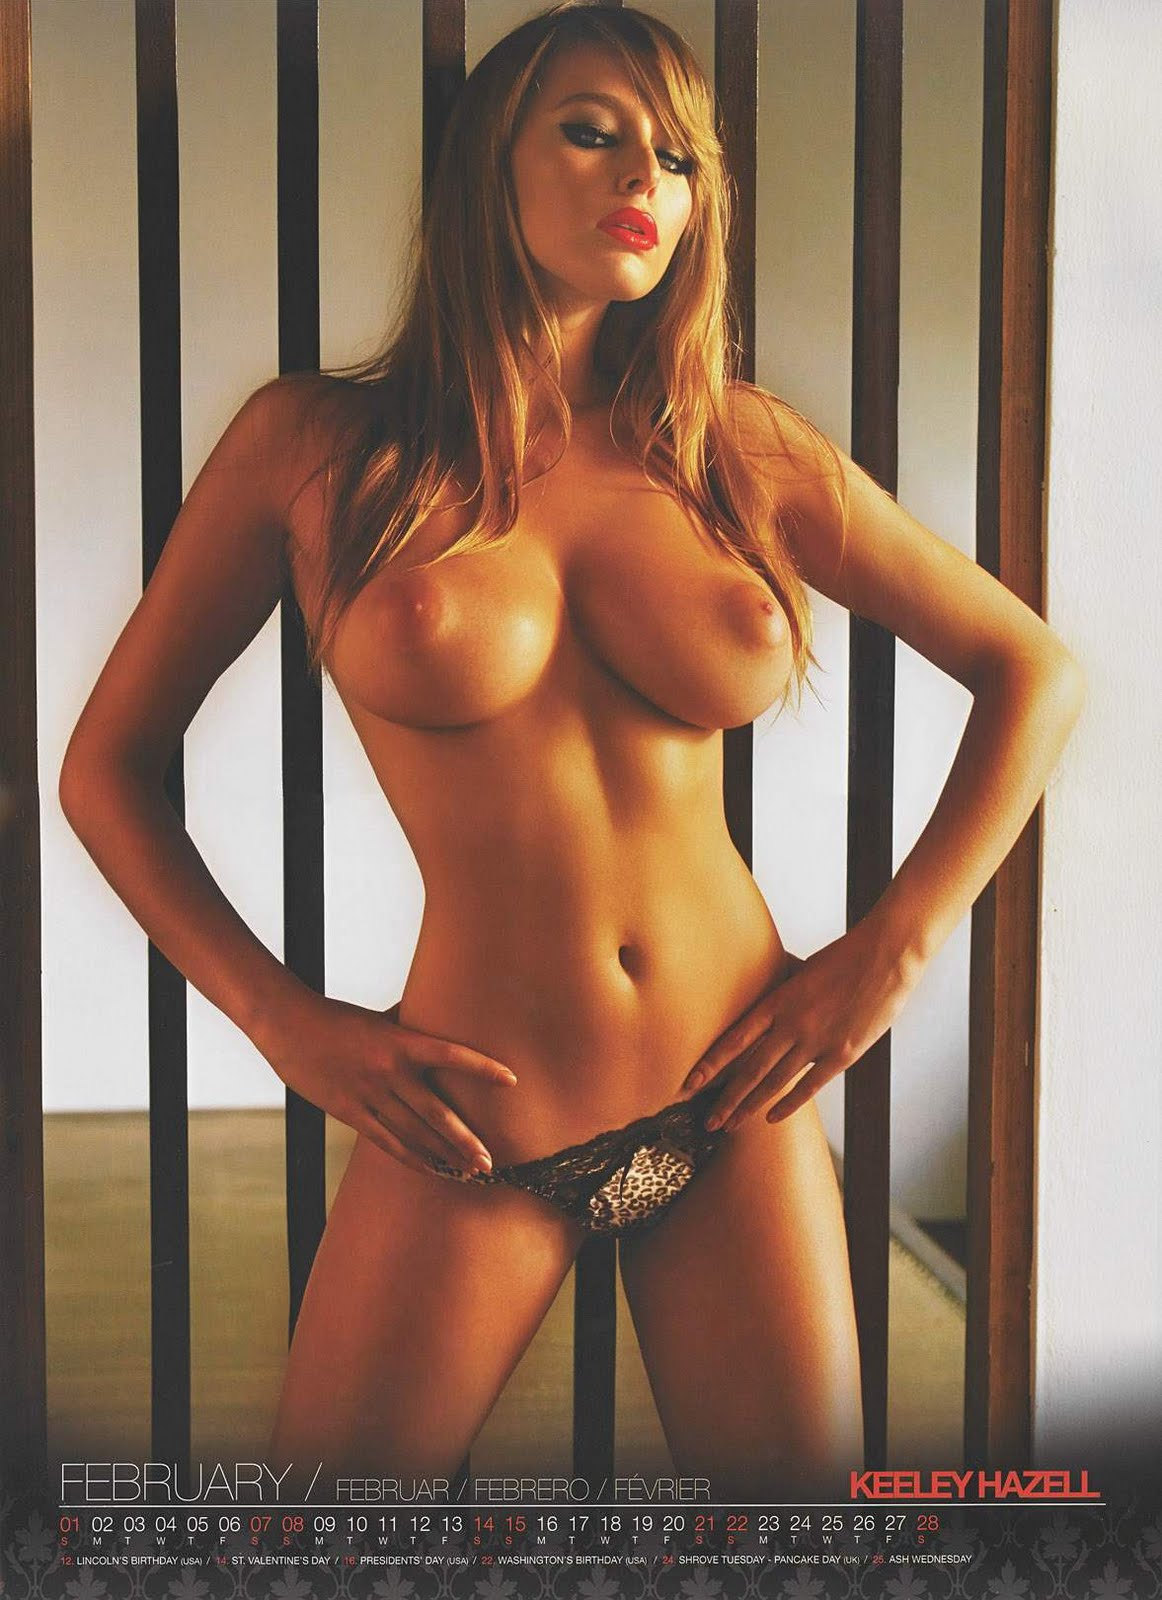 keeley hazell bottomless naked